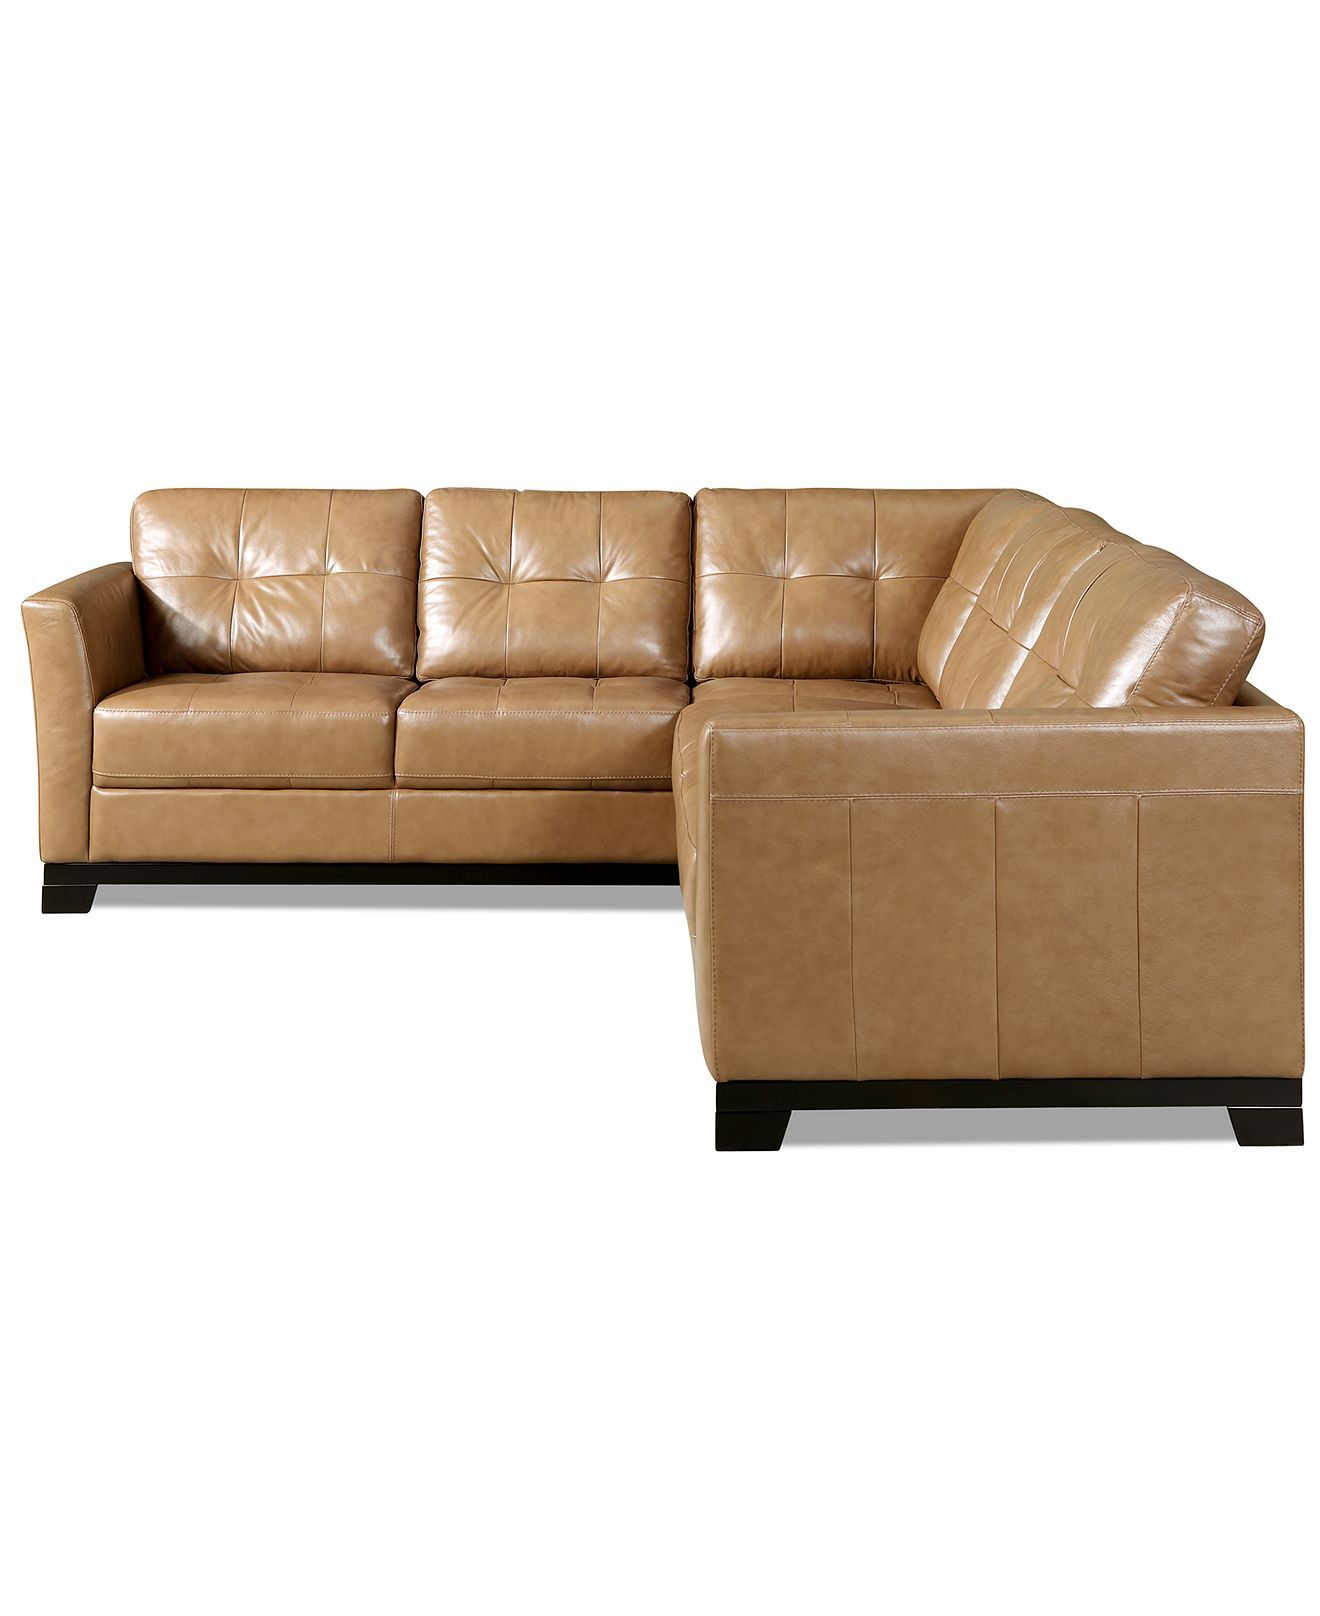 martino leather sofa european bed chicago sectional 2 piece and